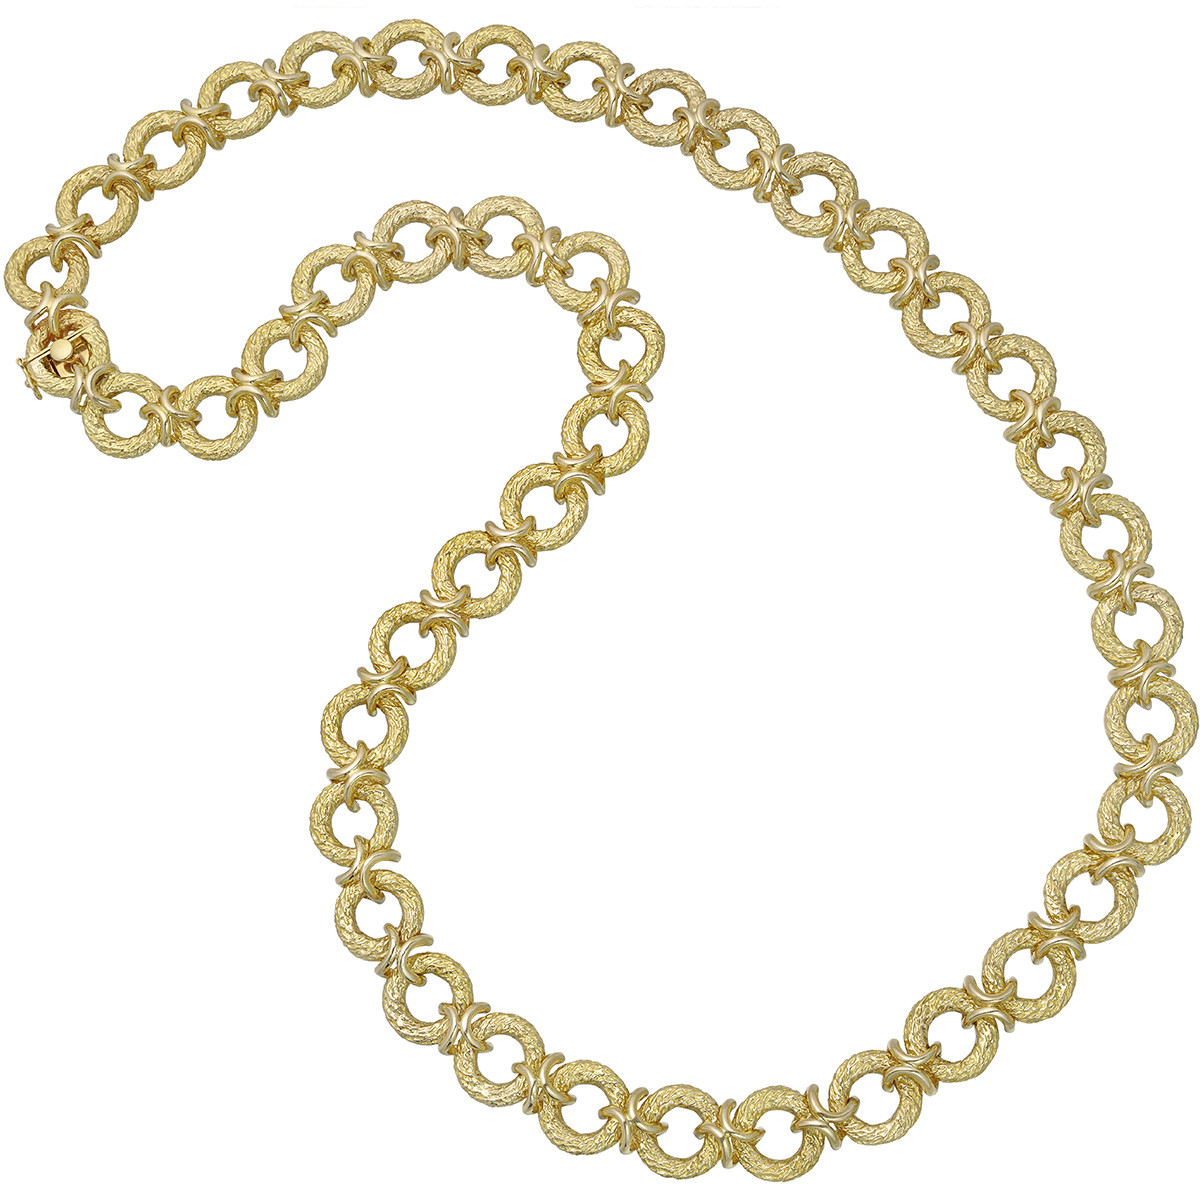 14k Yellow Gold Open Circle Link Necklace